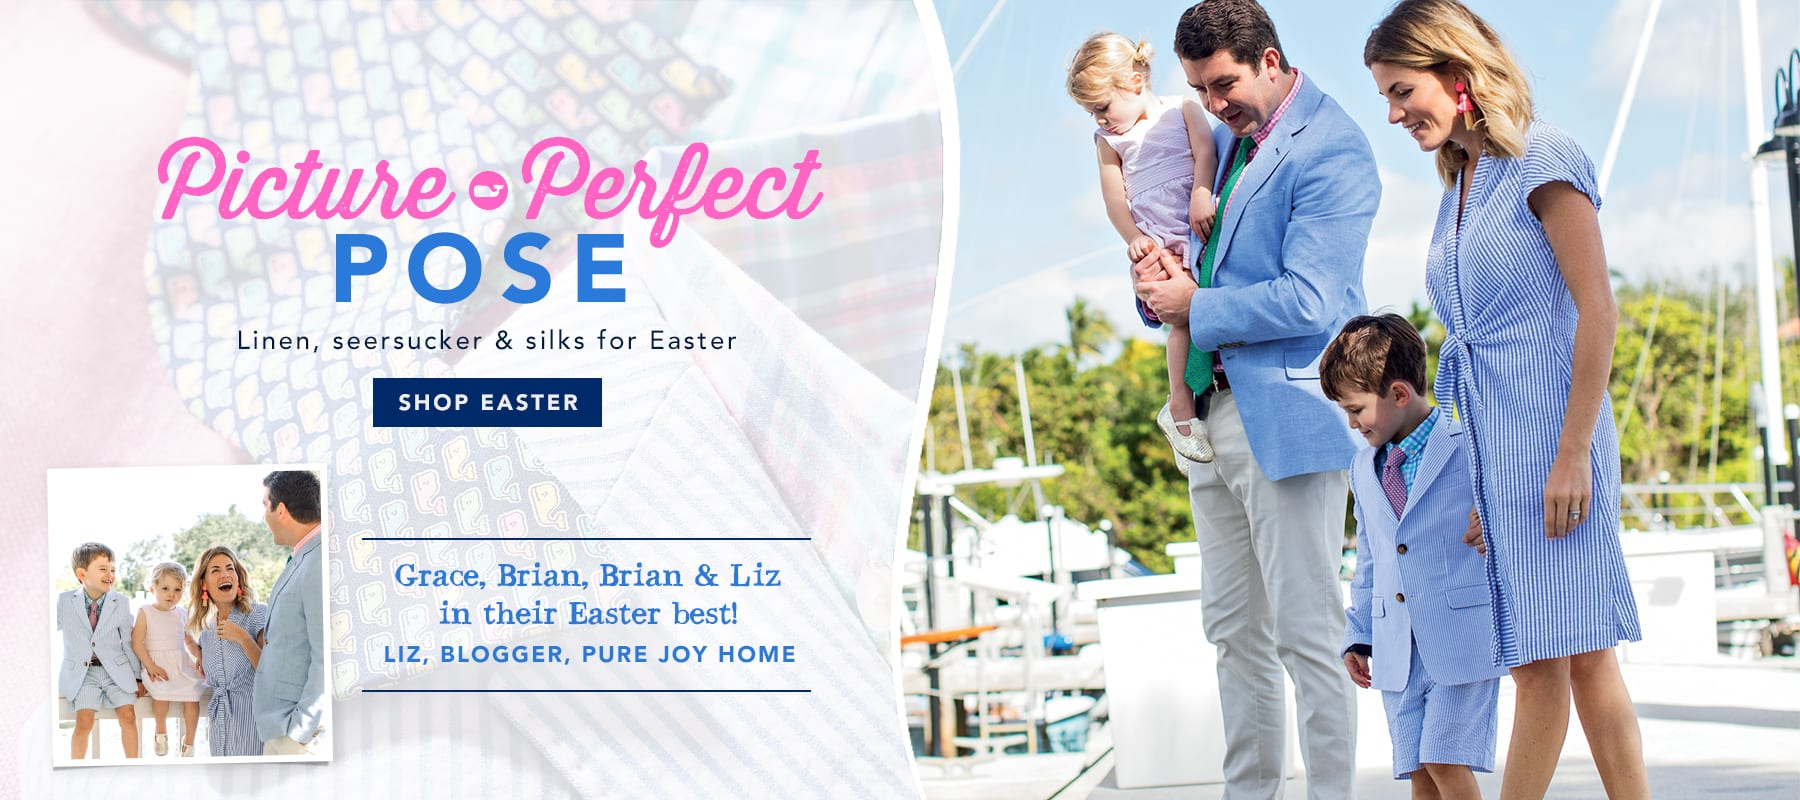 Picture perfect pose. Linen, seersucker & silks for Easter.Shop Easter.